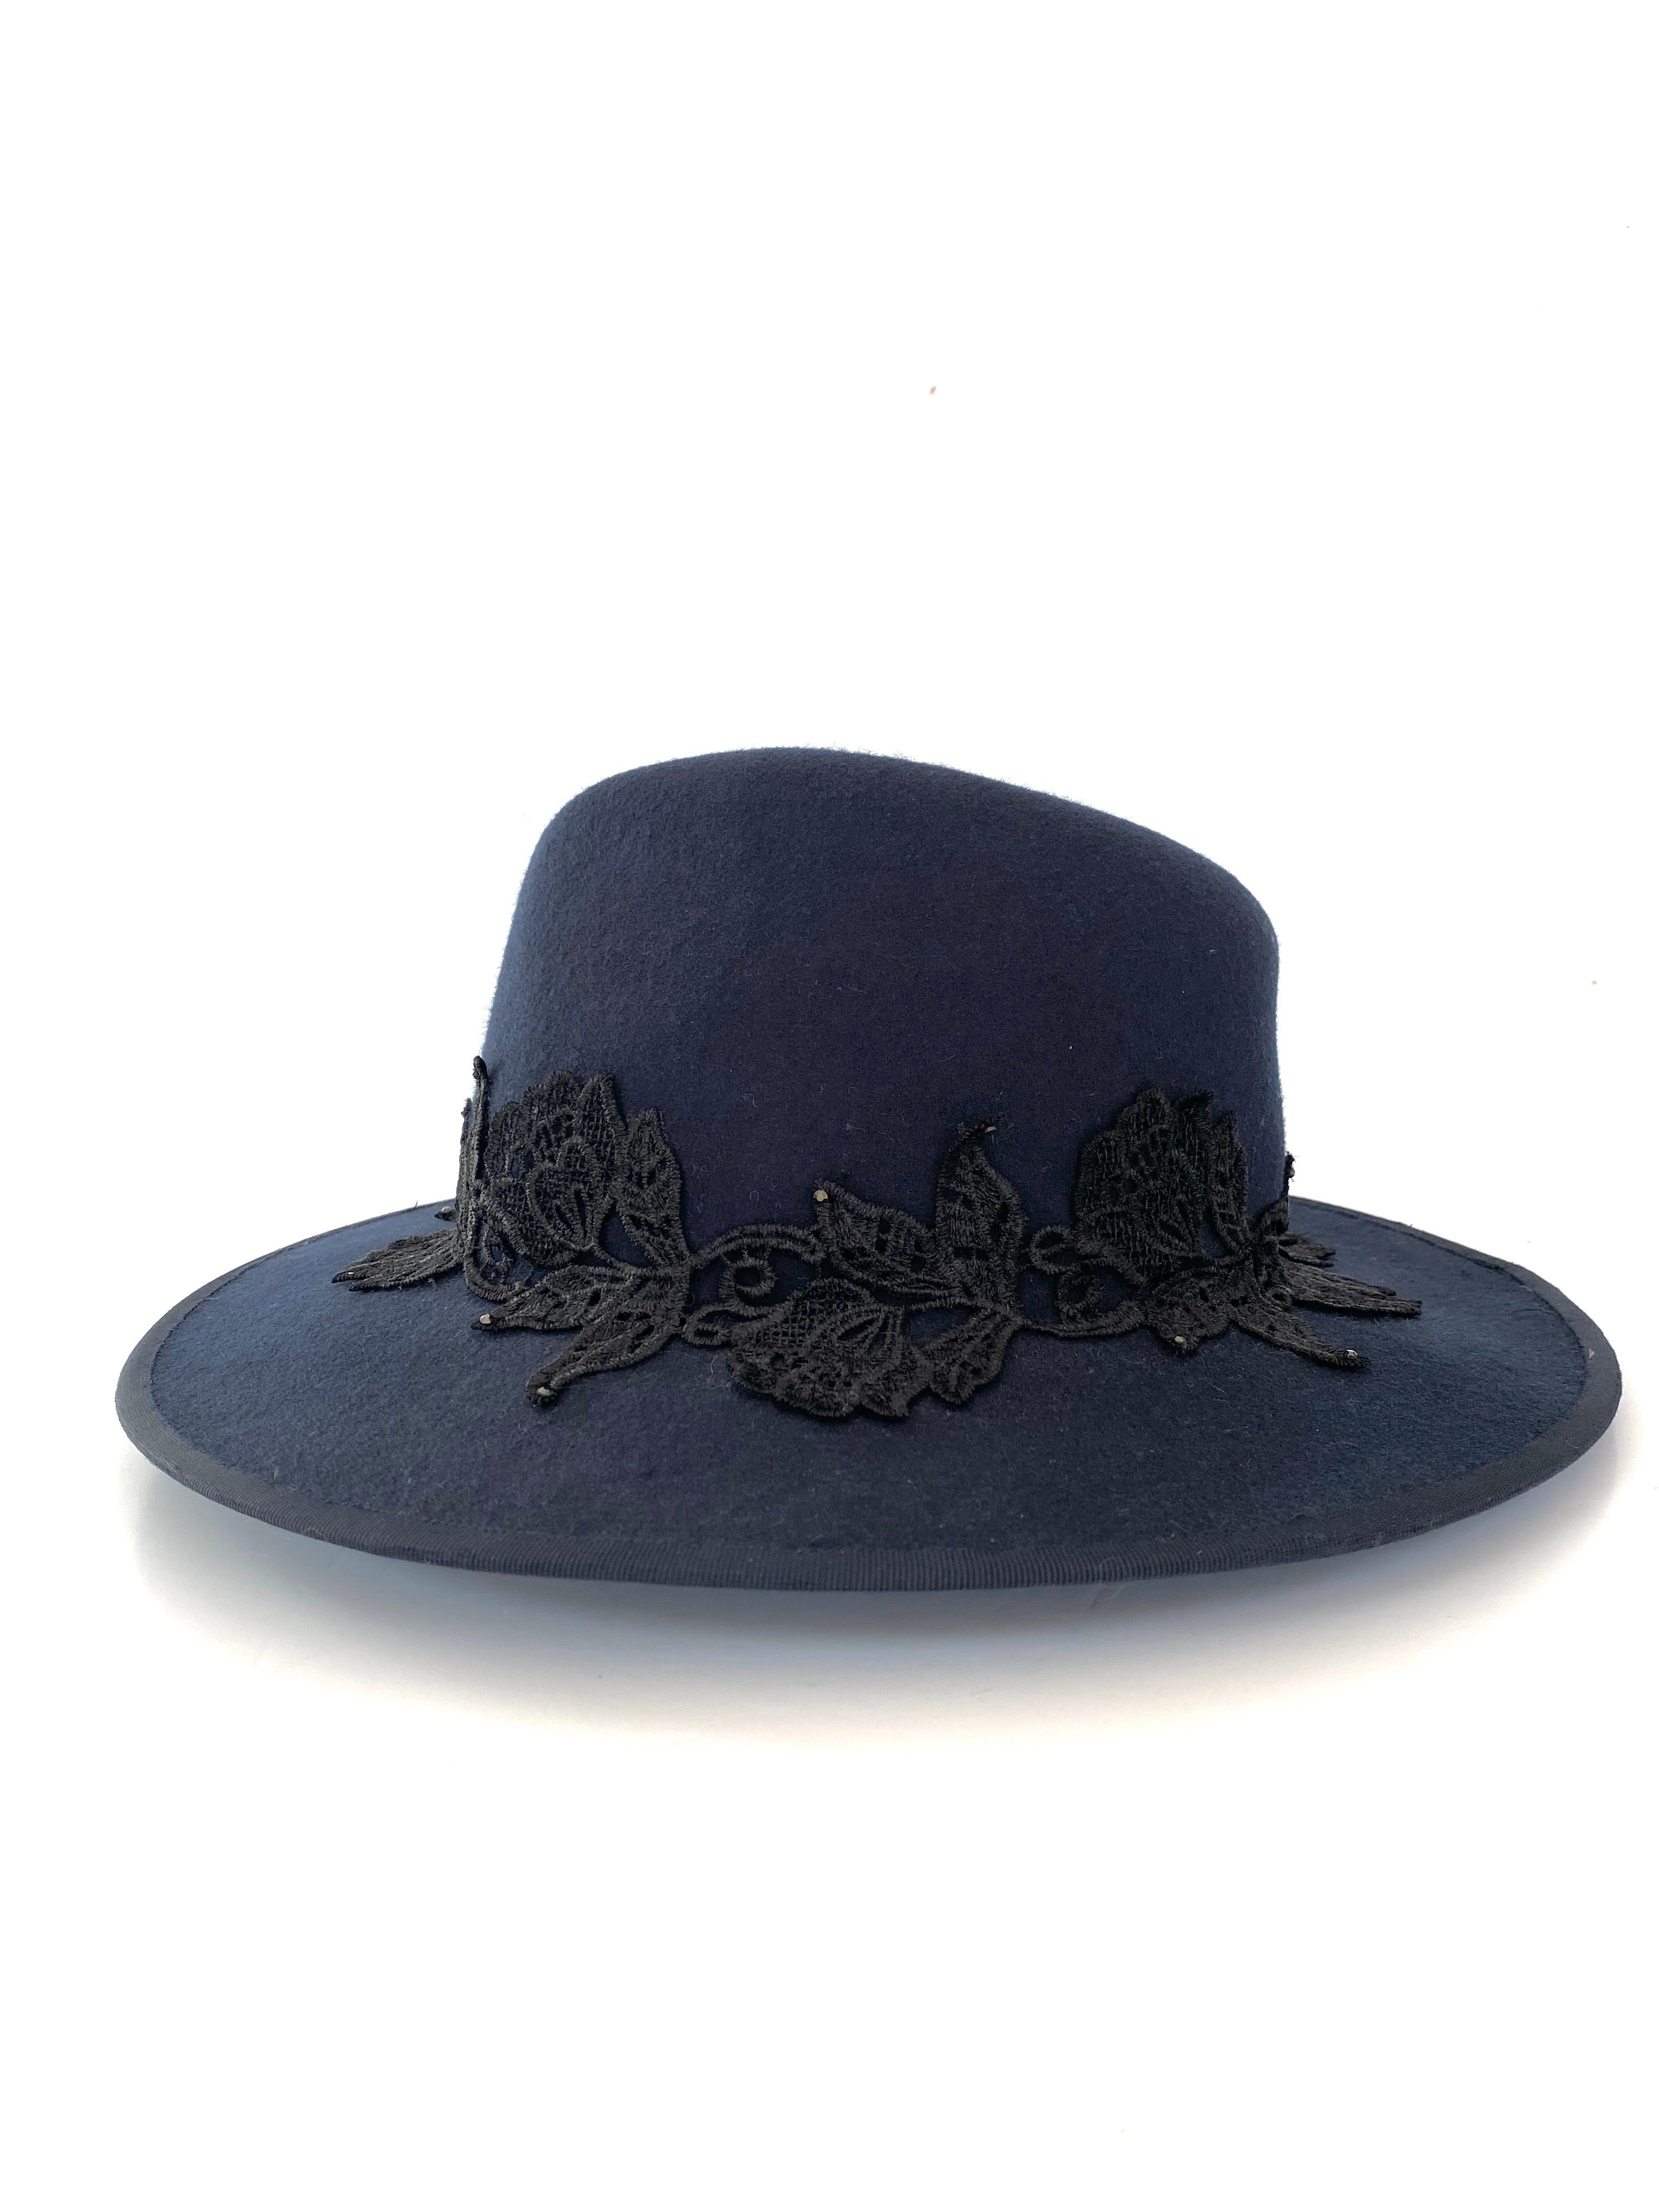 navy blue wool felt fedora hat, wide brimmed ladies winter hat with black lace band and tiny crystals